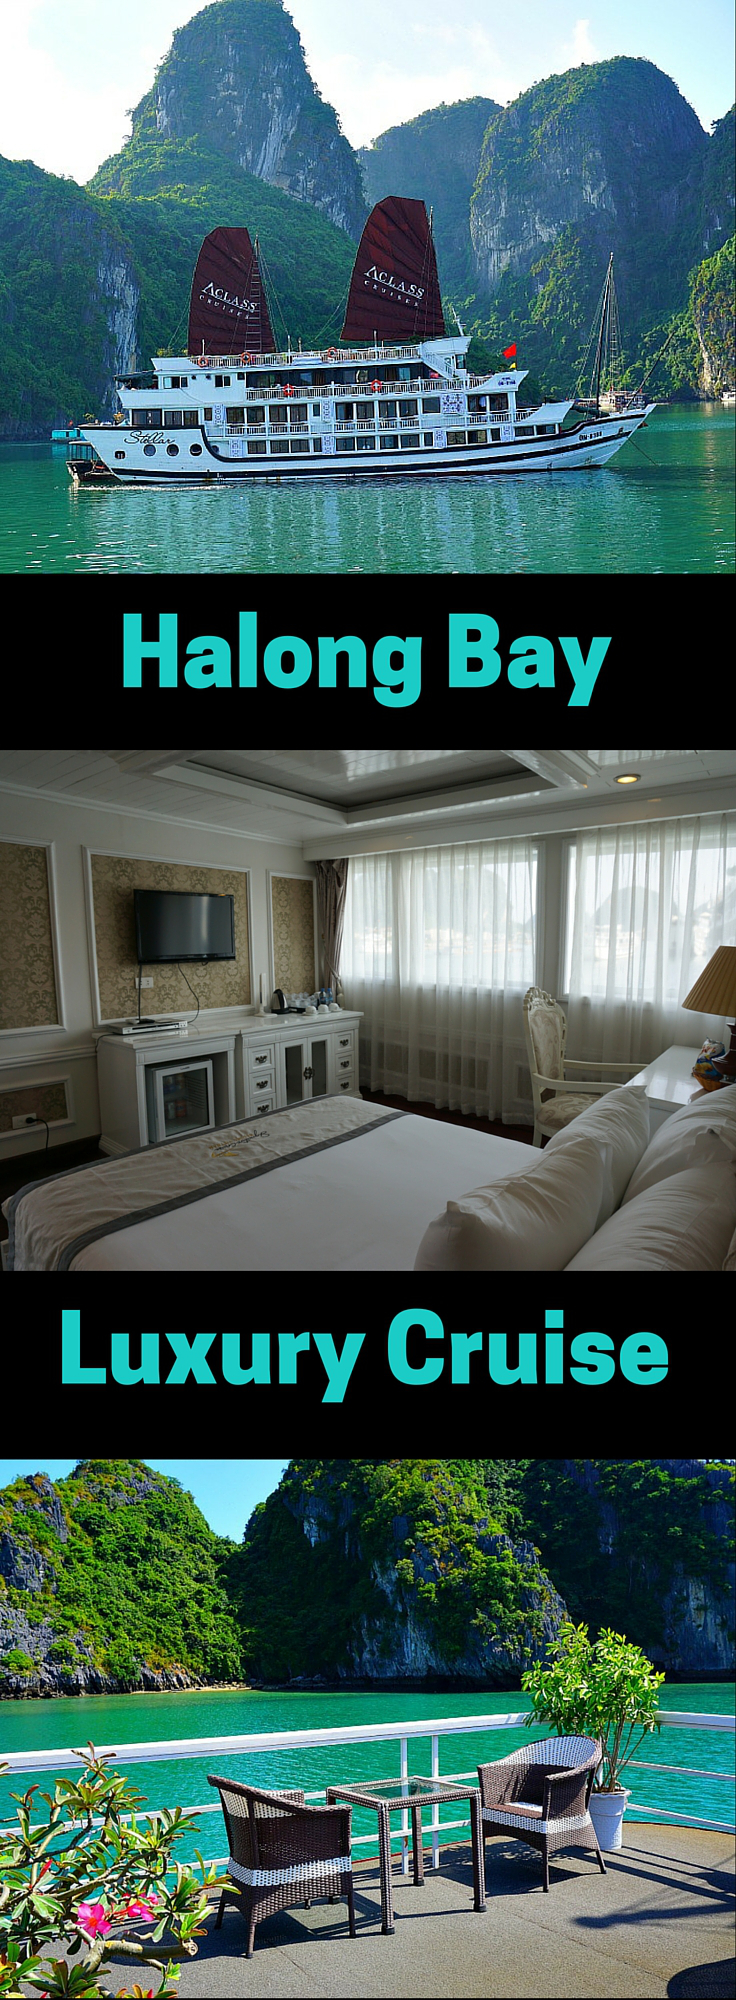 Ha Long Bay Luxury Cruise